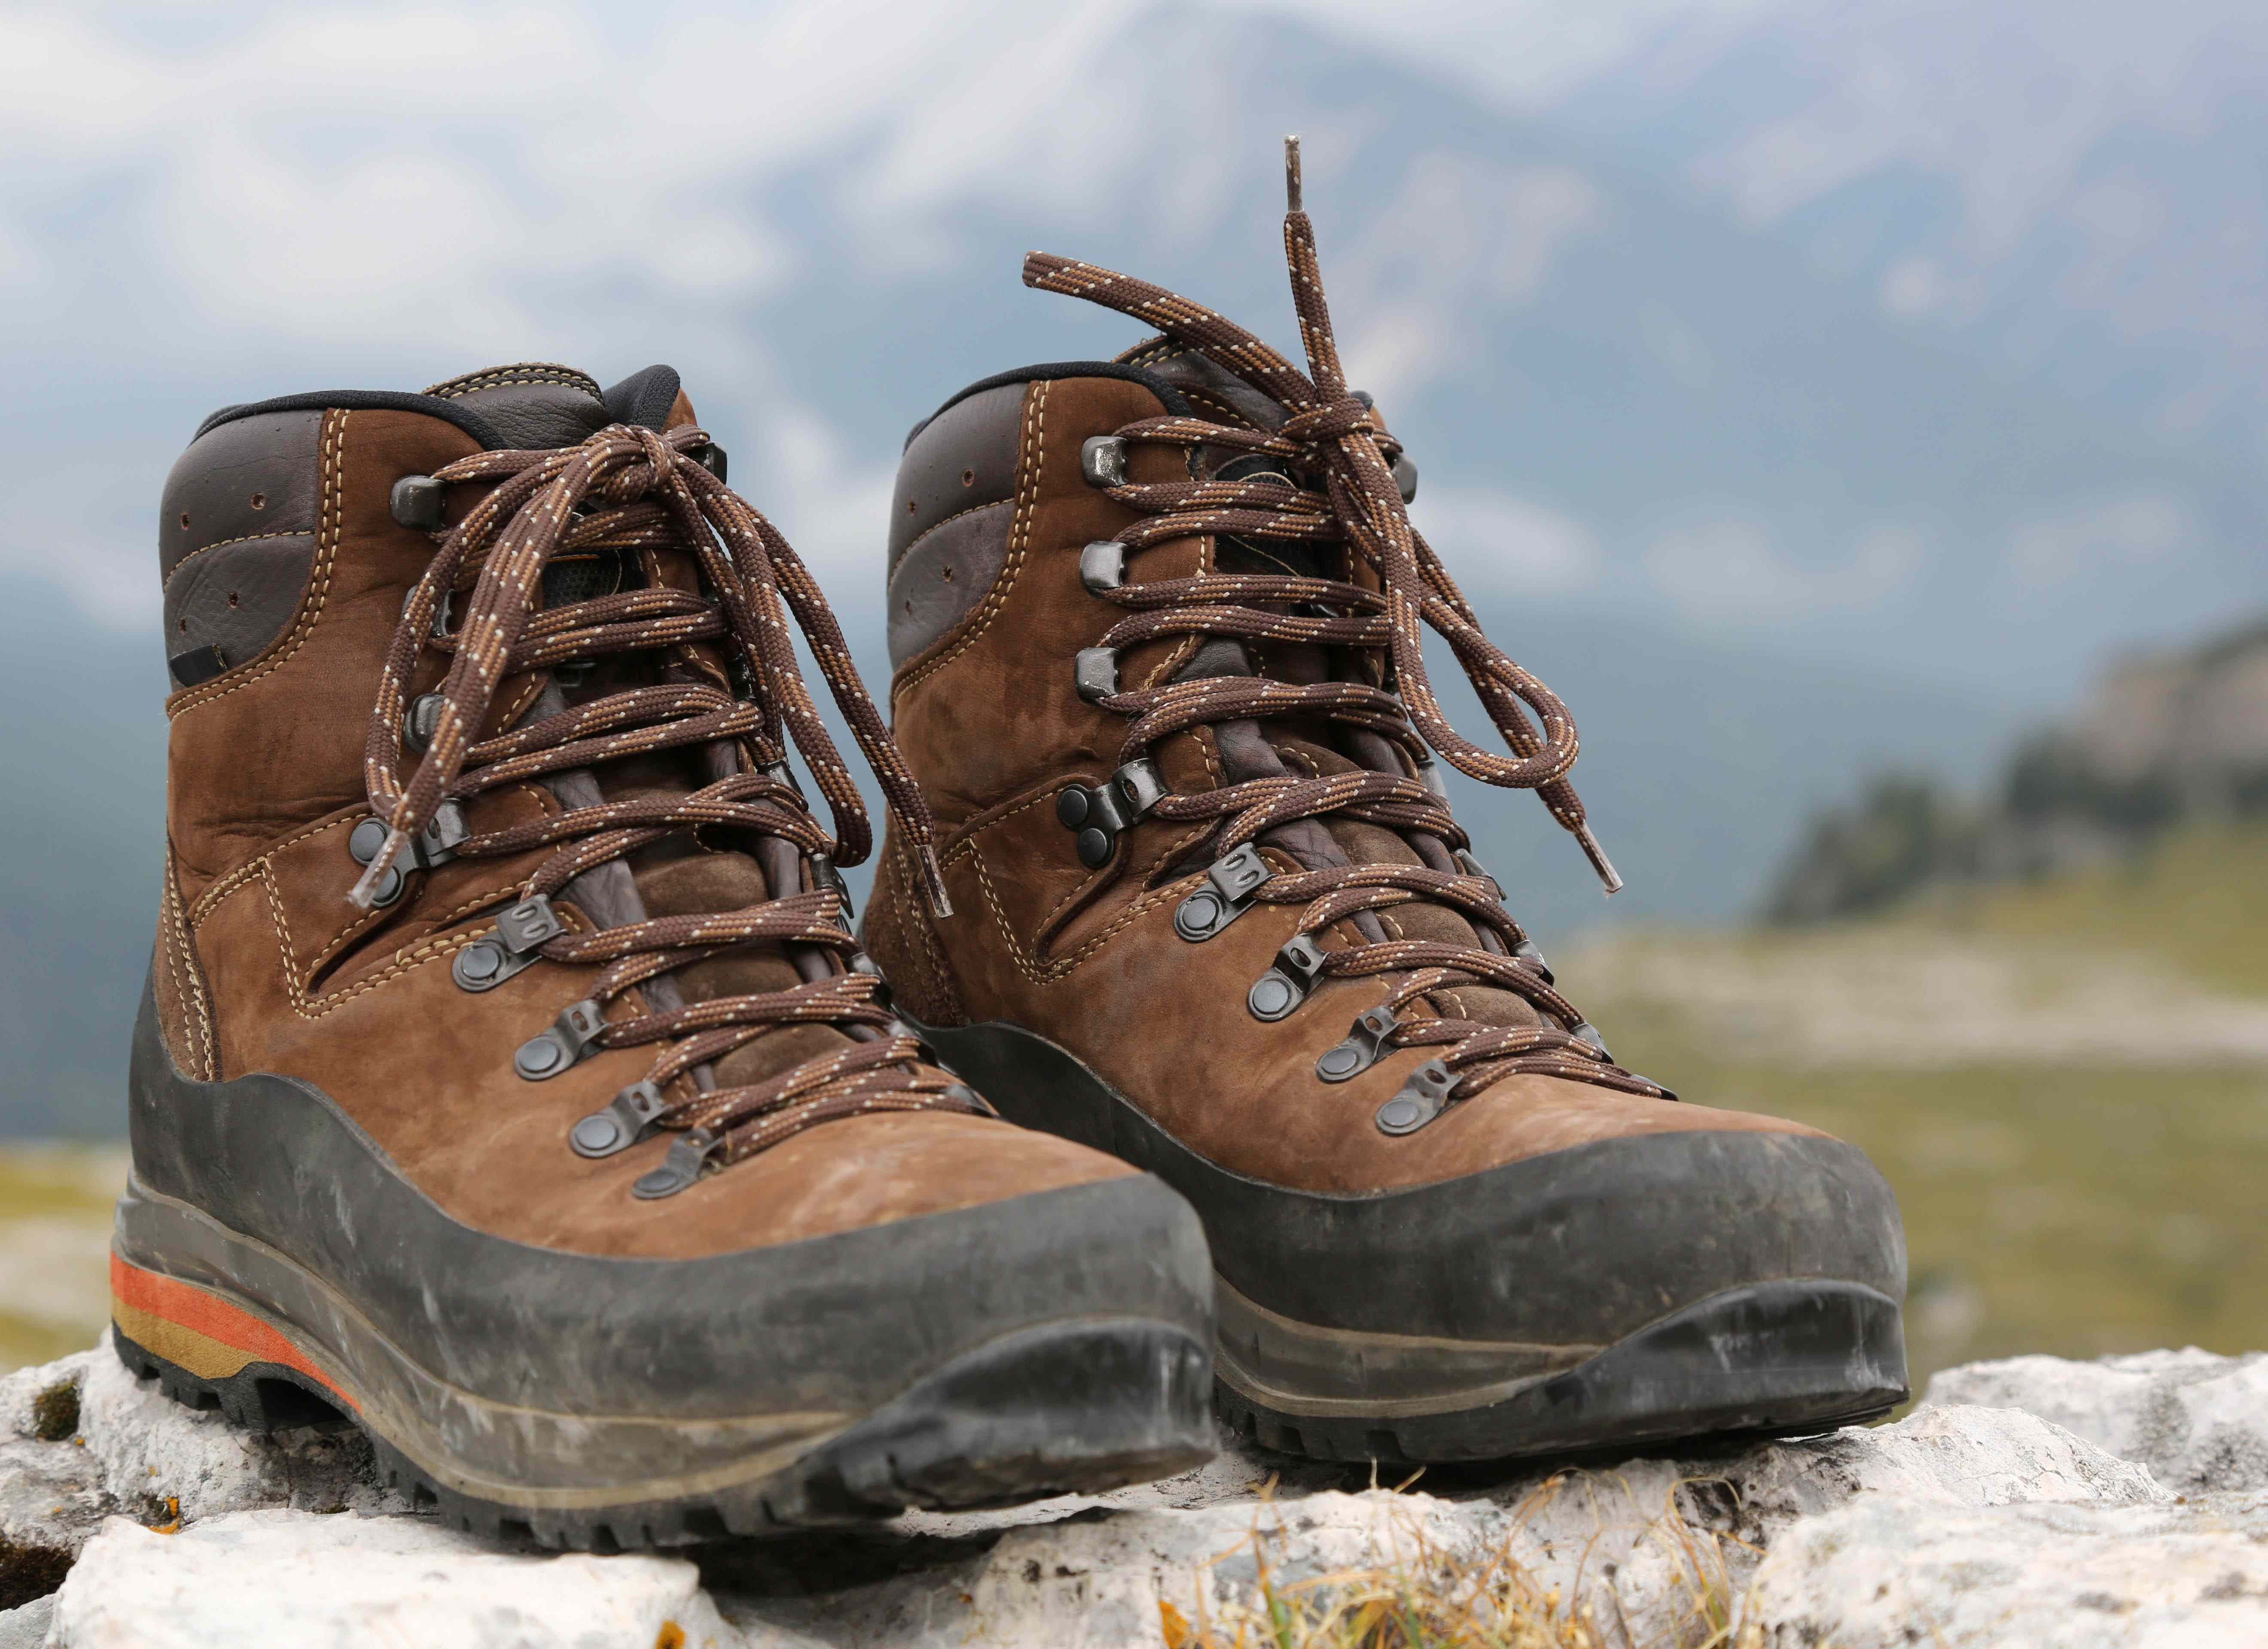 b7608a037e9 The 13 Best Waterproof Hiking Boots Reviews & Guide 2019